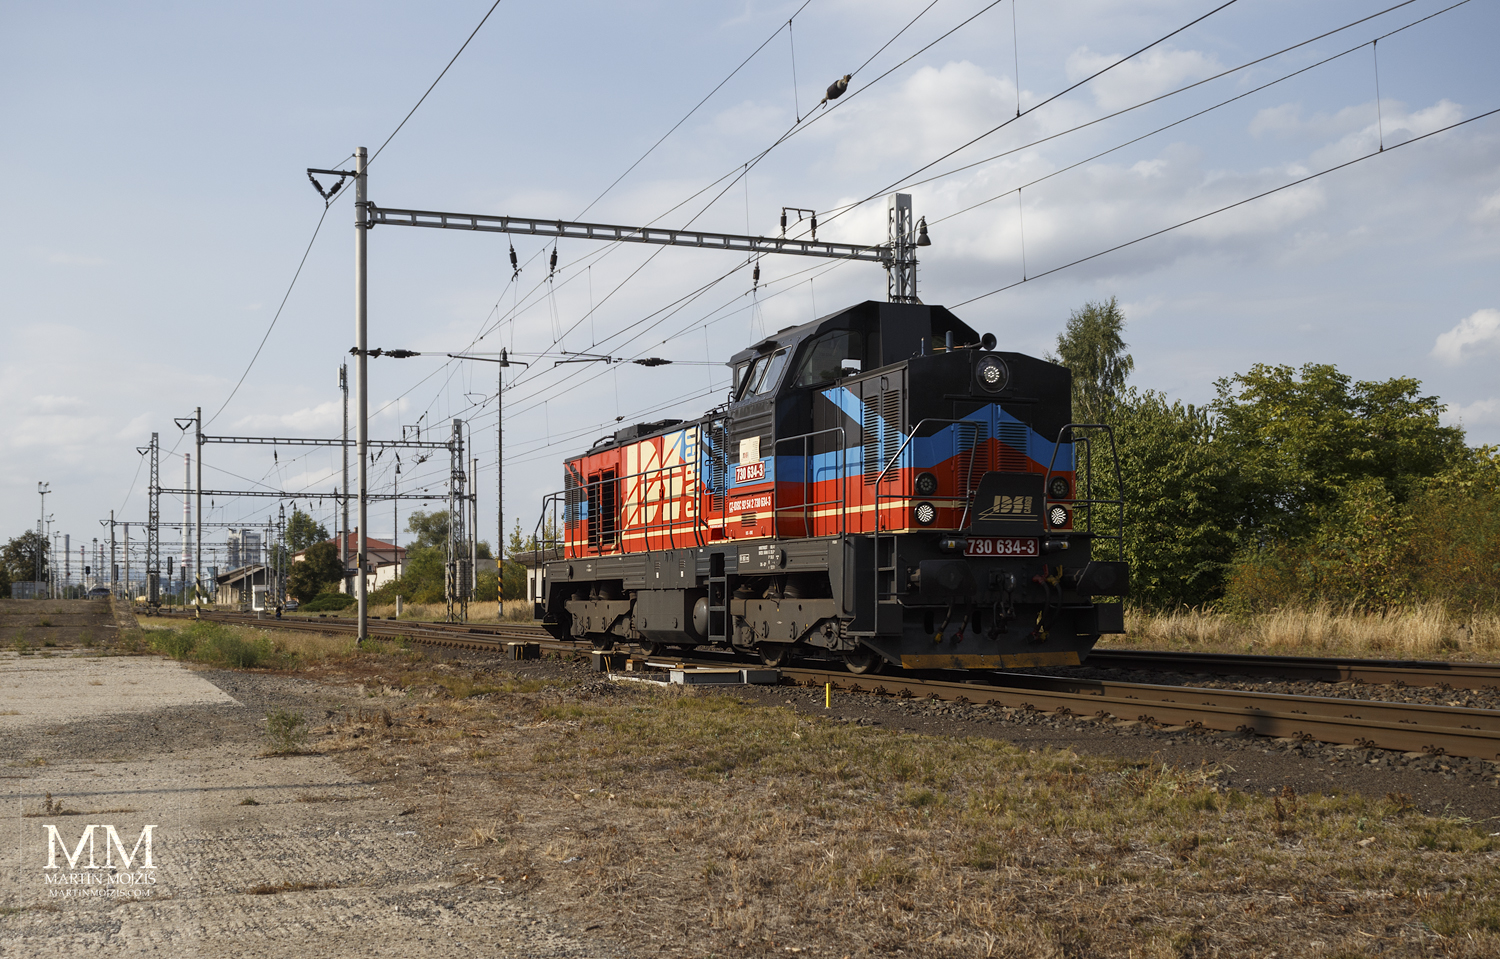 Diesel-electric locomotive 730 634-3 IDS Cargo.